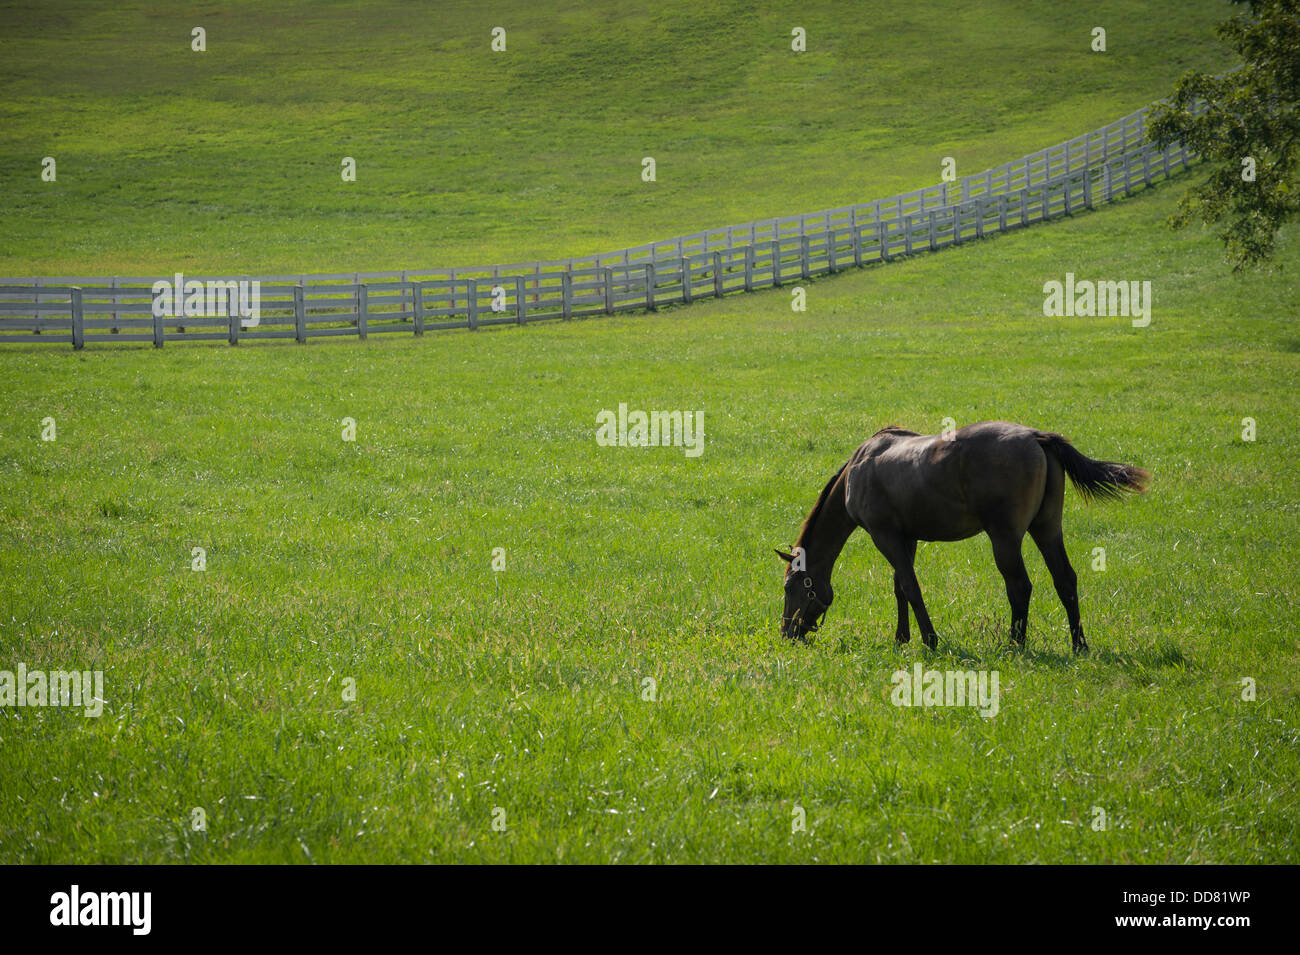 Horse Grazing In Field With White Fence, Lexington Kentucky, USA - Stock Image